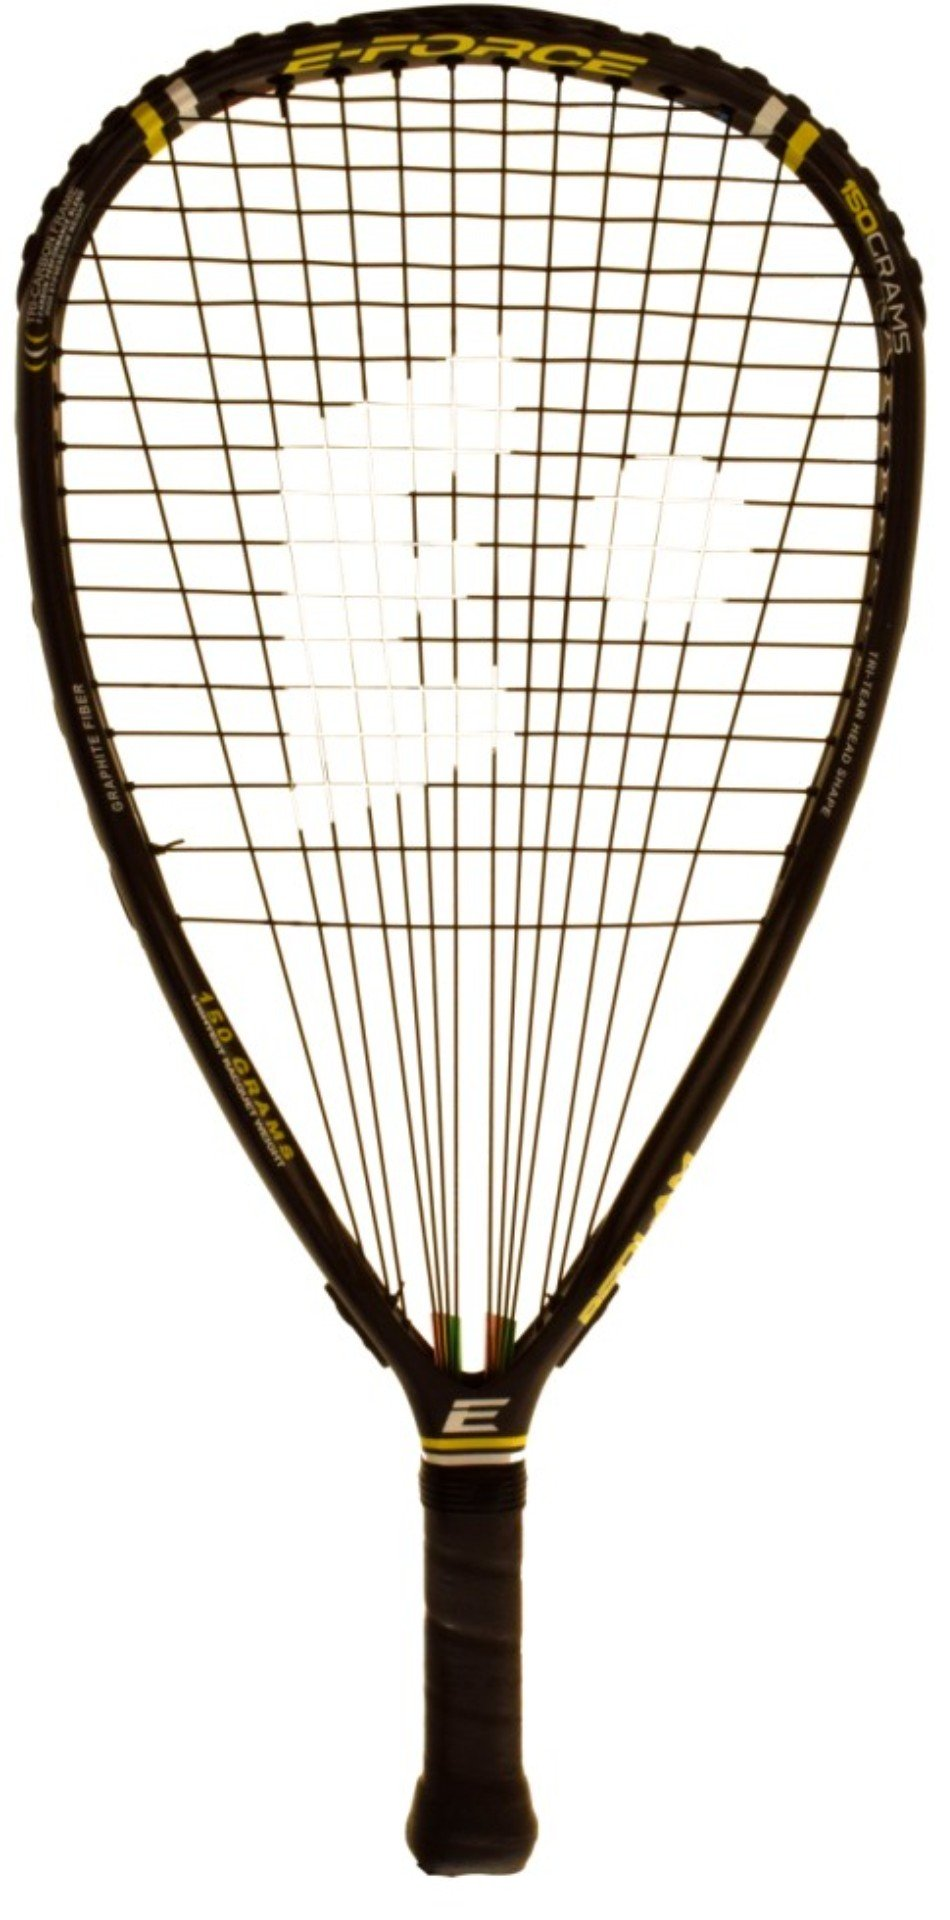 E-Force Bedlam STUN 150 Racquetball Racquet - One Color 3 5/8